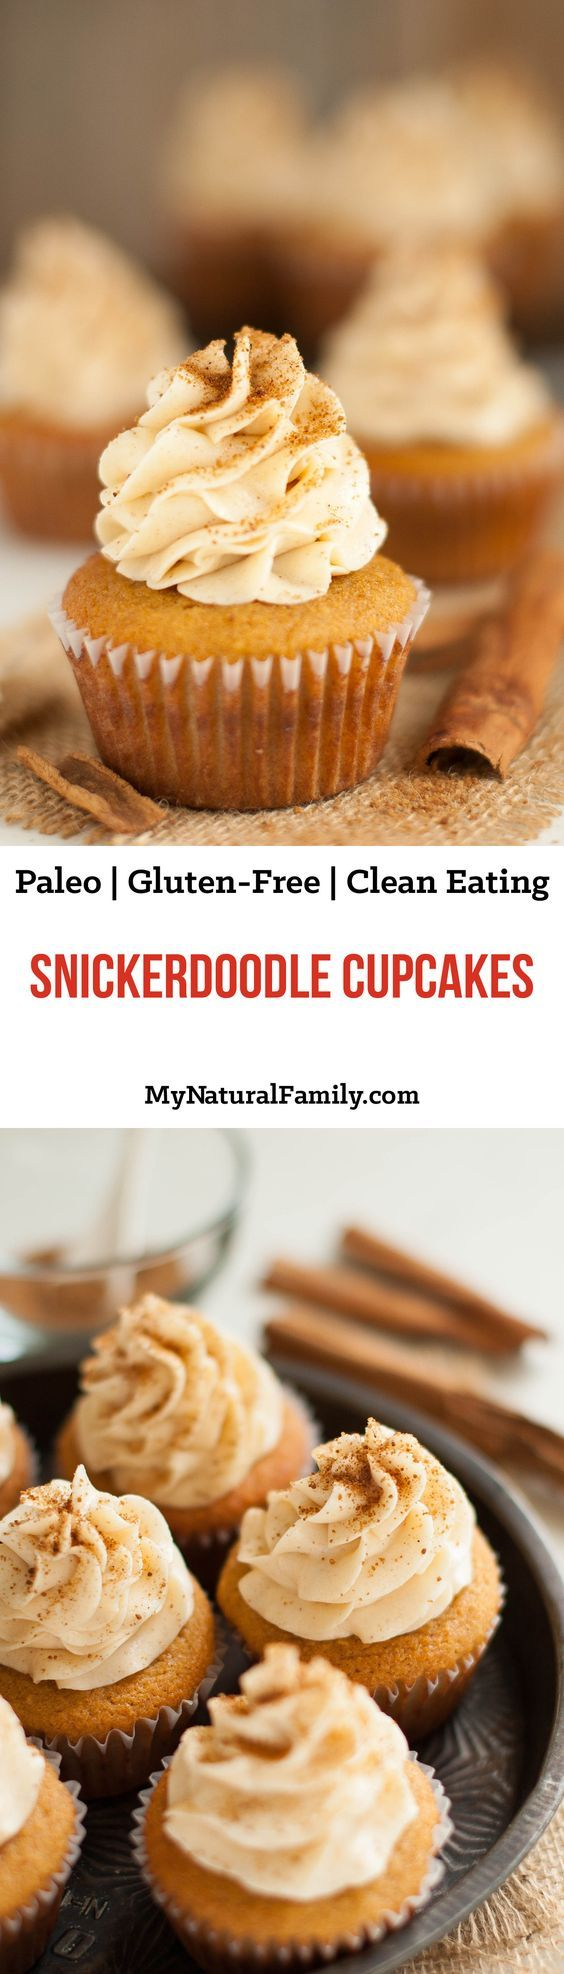 Snickerdoodle Cupcakes Recipe (Paleo, Gluten Free, Clean Eating)